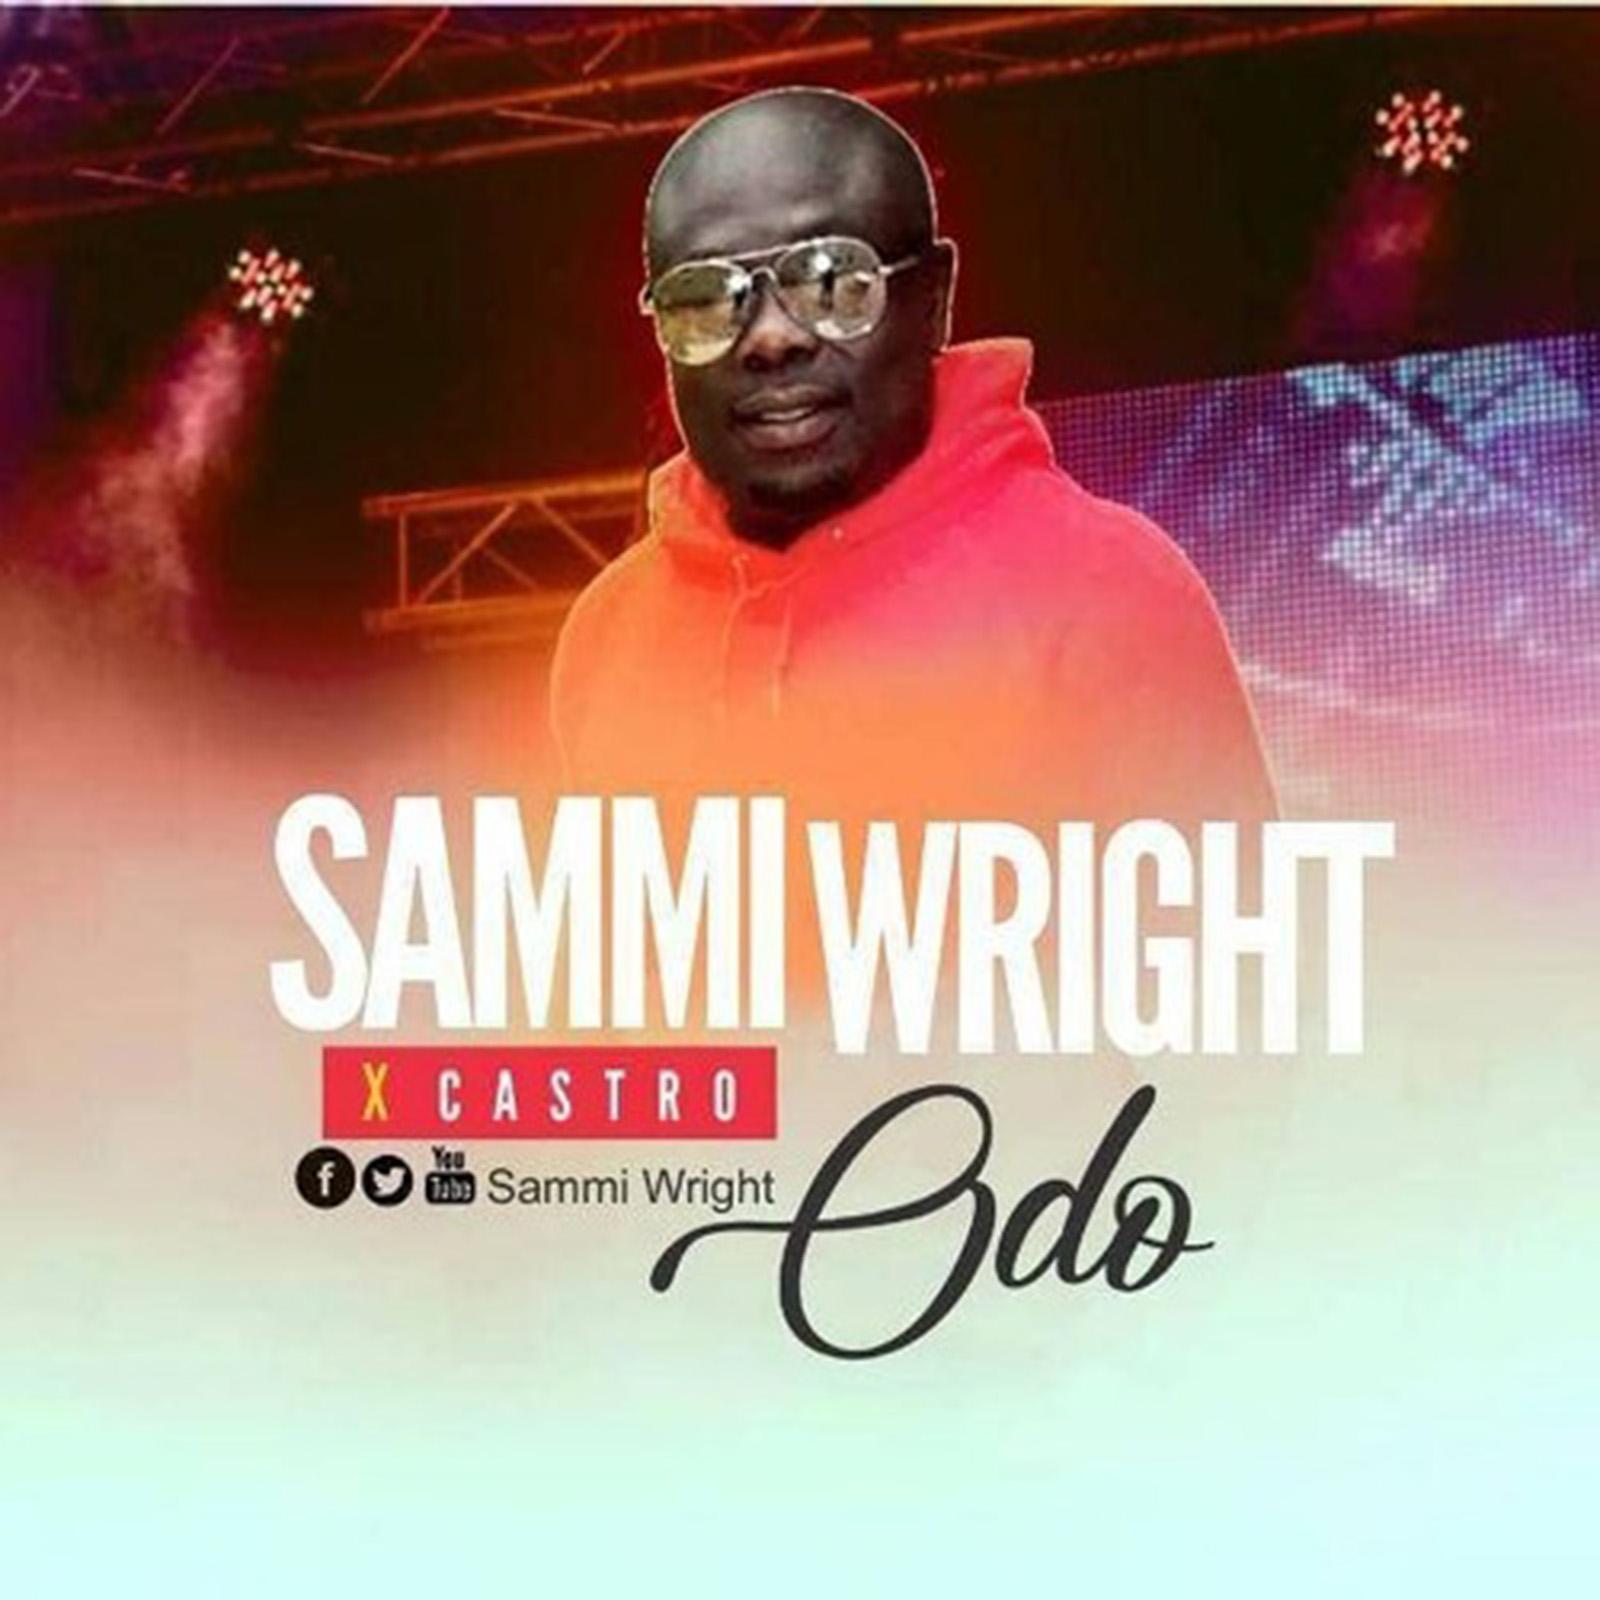 Odo by Sammi Wright feat. Castro